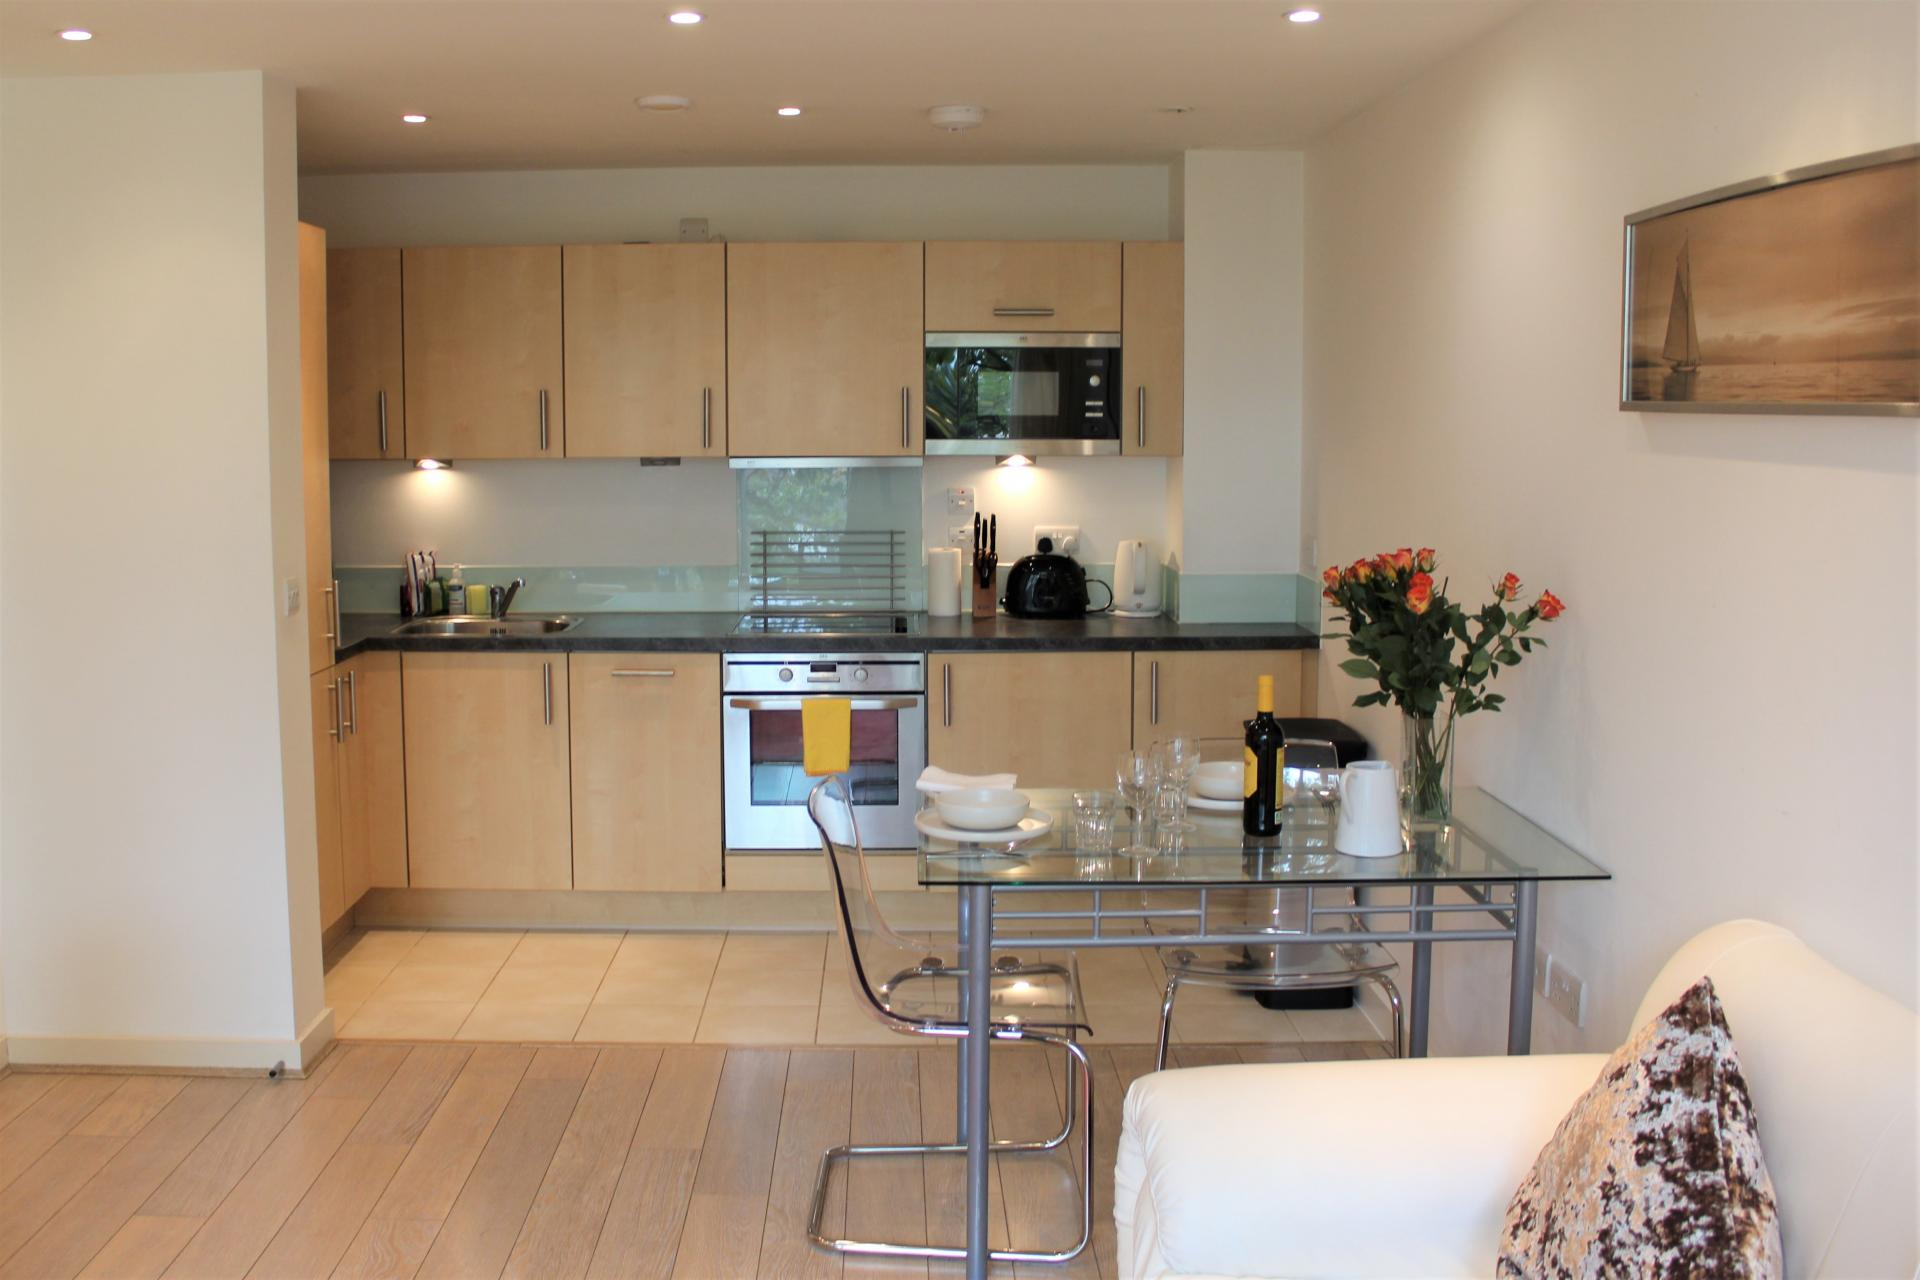 Kitchen and dining area at Gunwharf Quays Apartments, Gunwharf Quays, Portsmouth